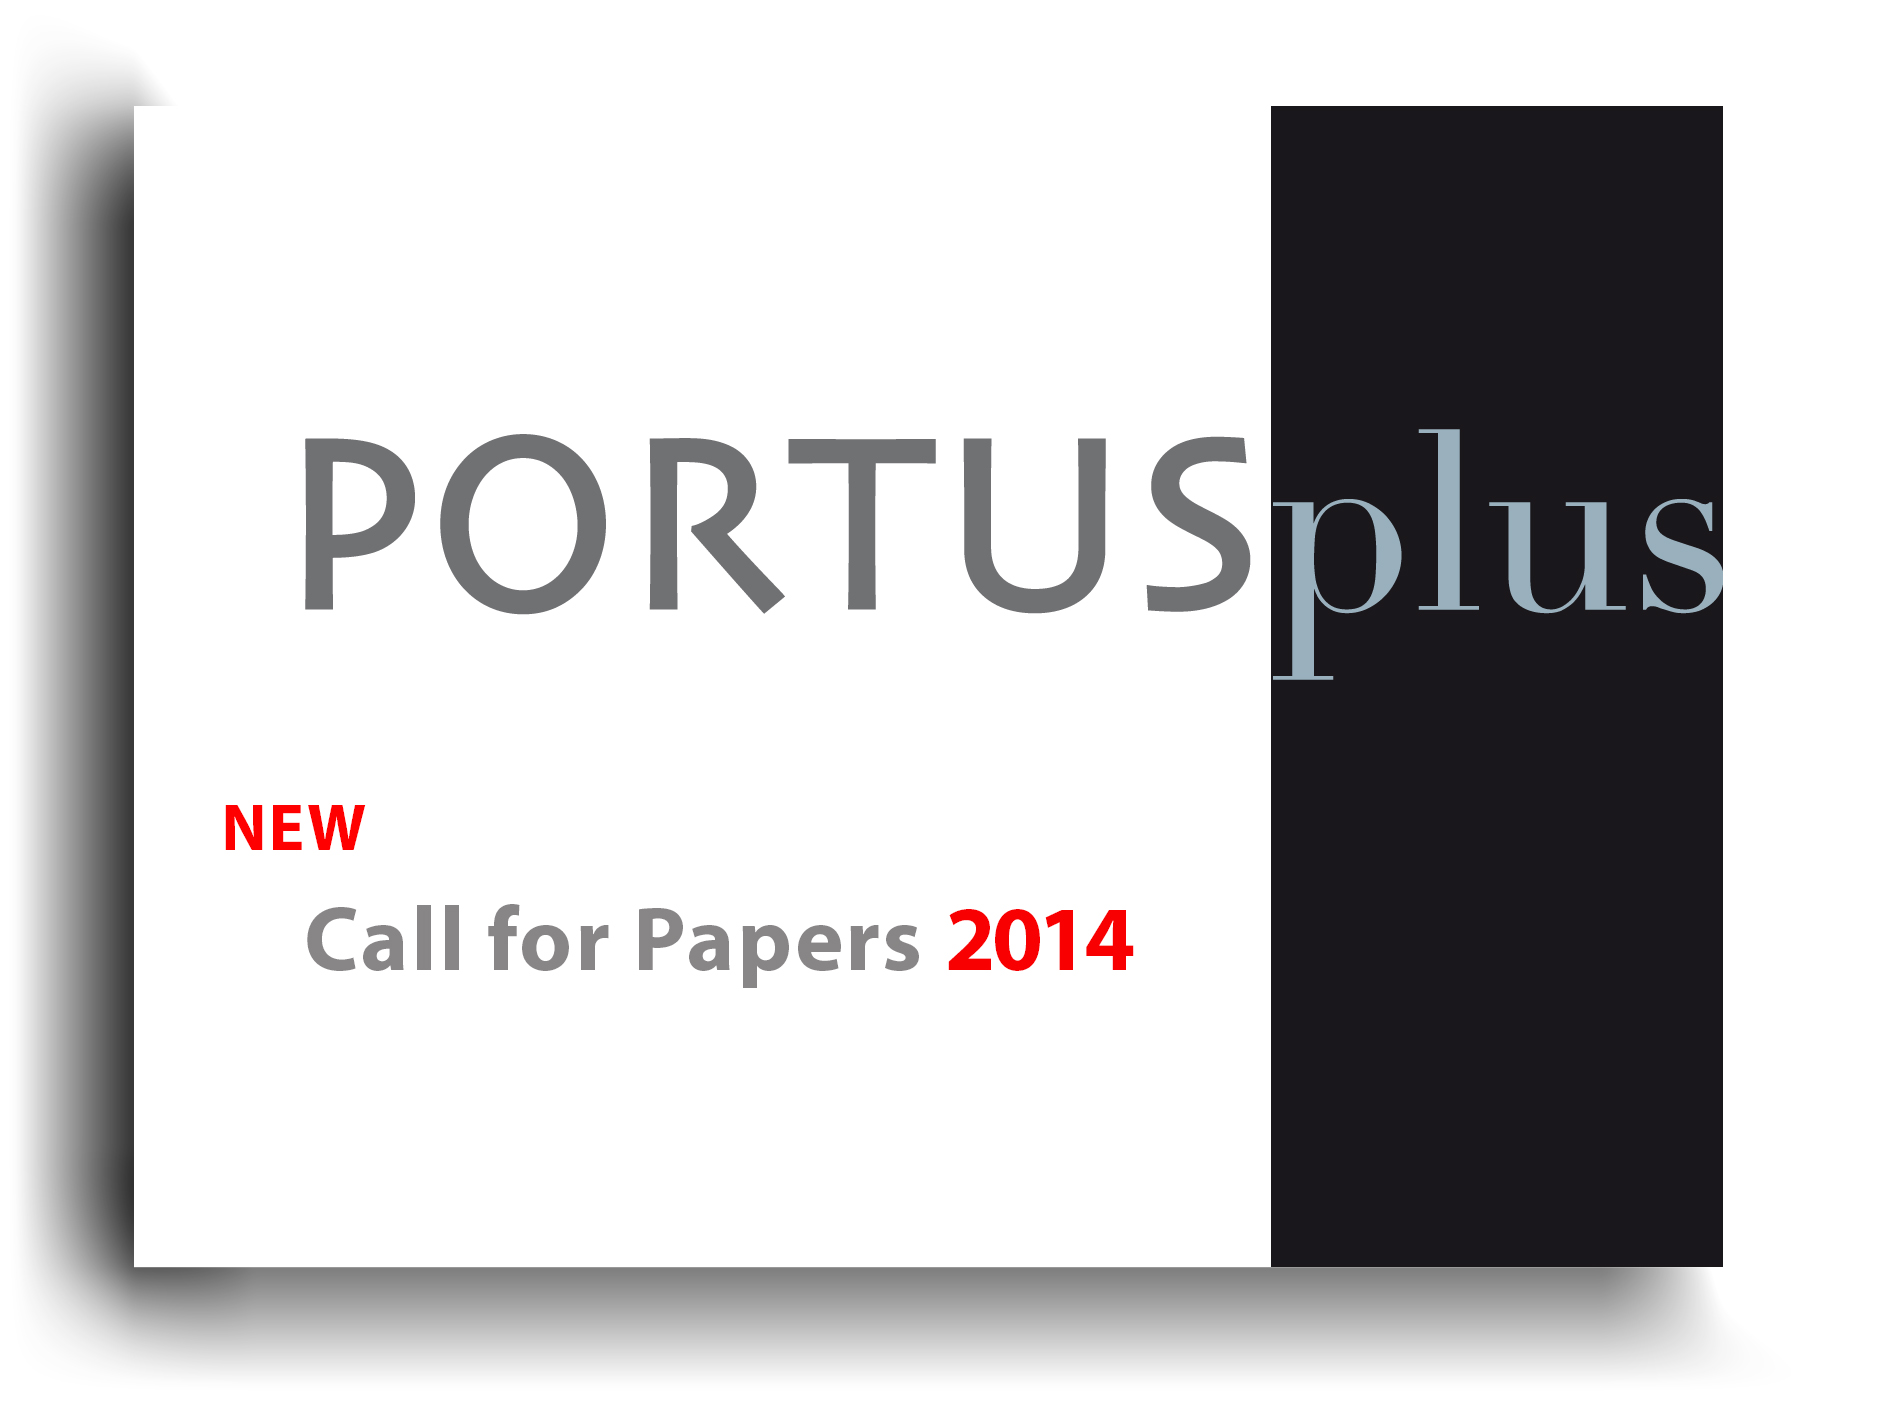 Call for Papers 2014